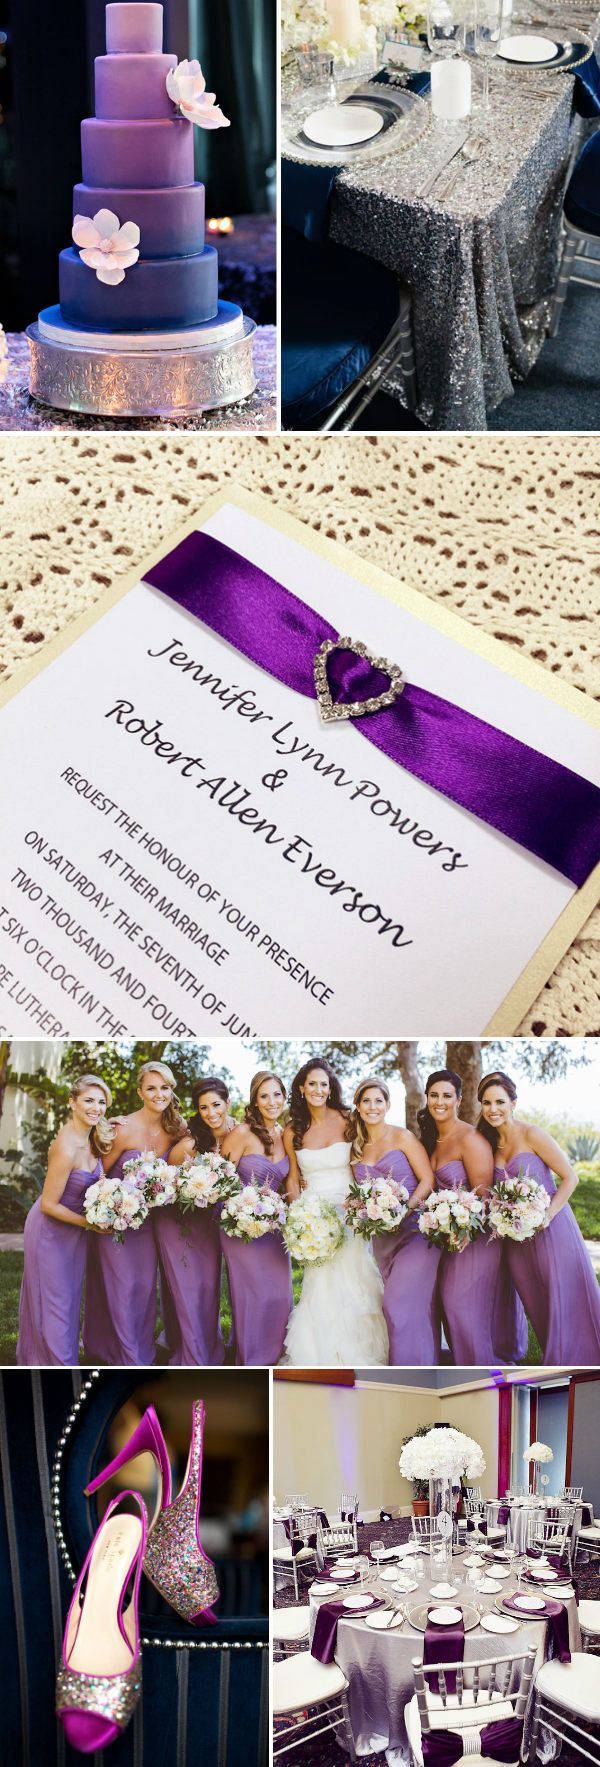 how to address couples on wedding invitations%0A purple and glitter silver wedding ideas and wedding invitations